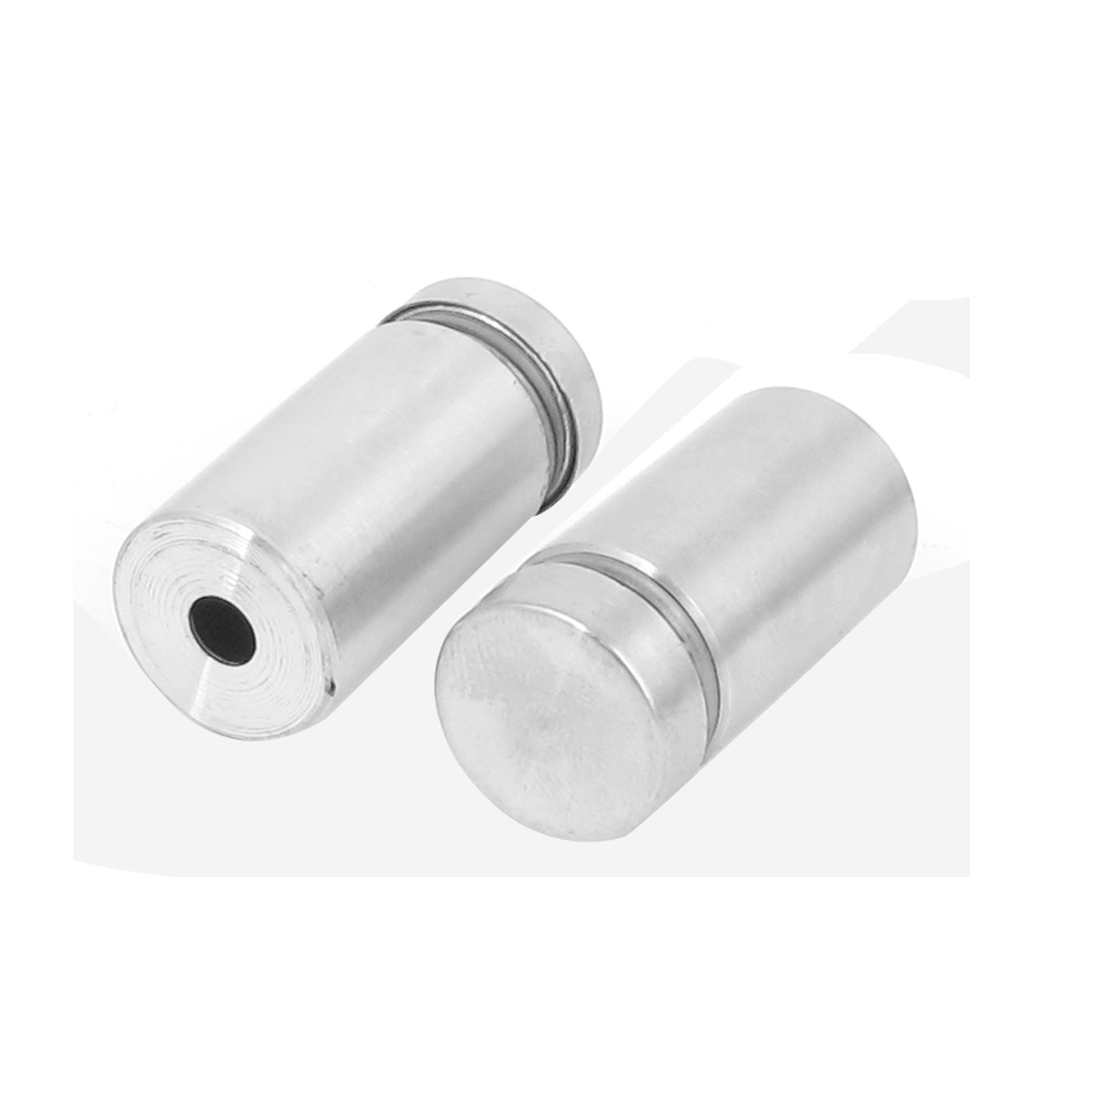 16mm x 30mm Stainless Steel Advertising Frameless Glass Standoff Pins Clamp 2pcs